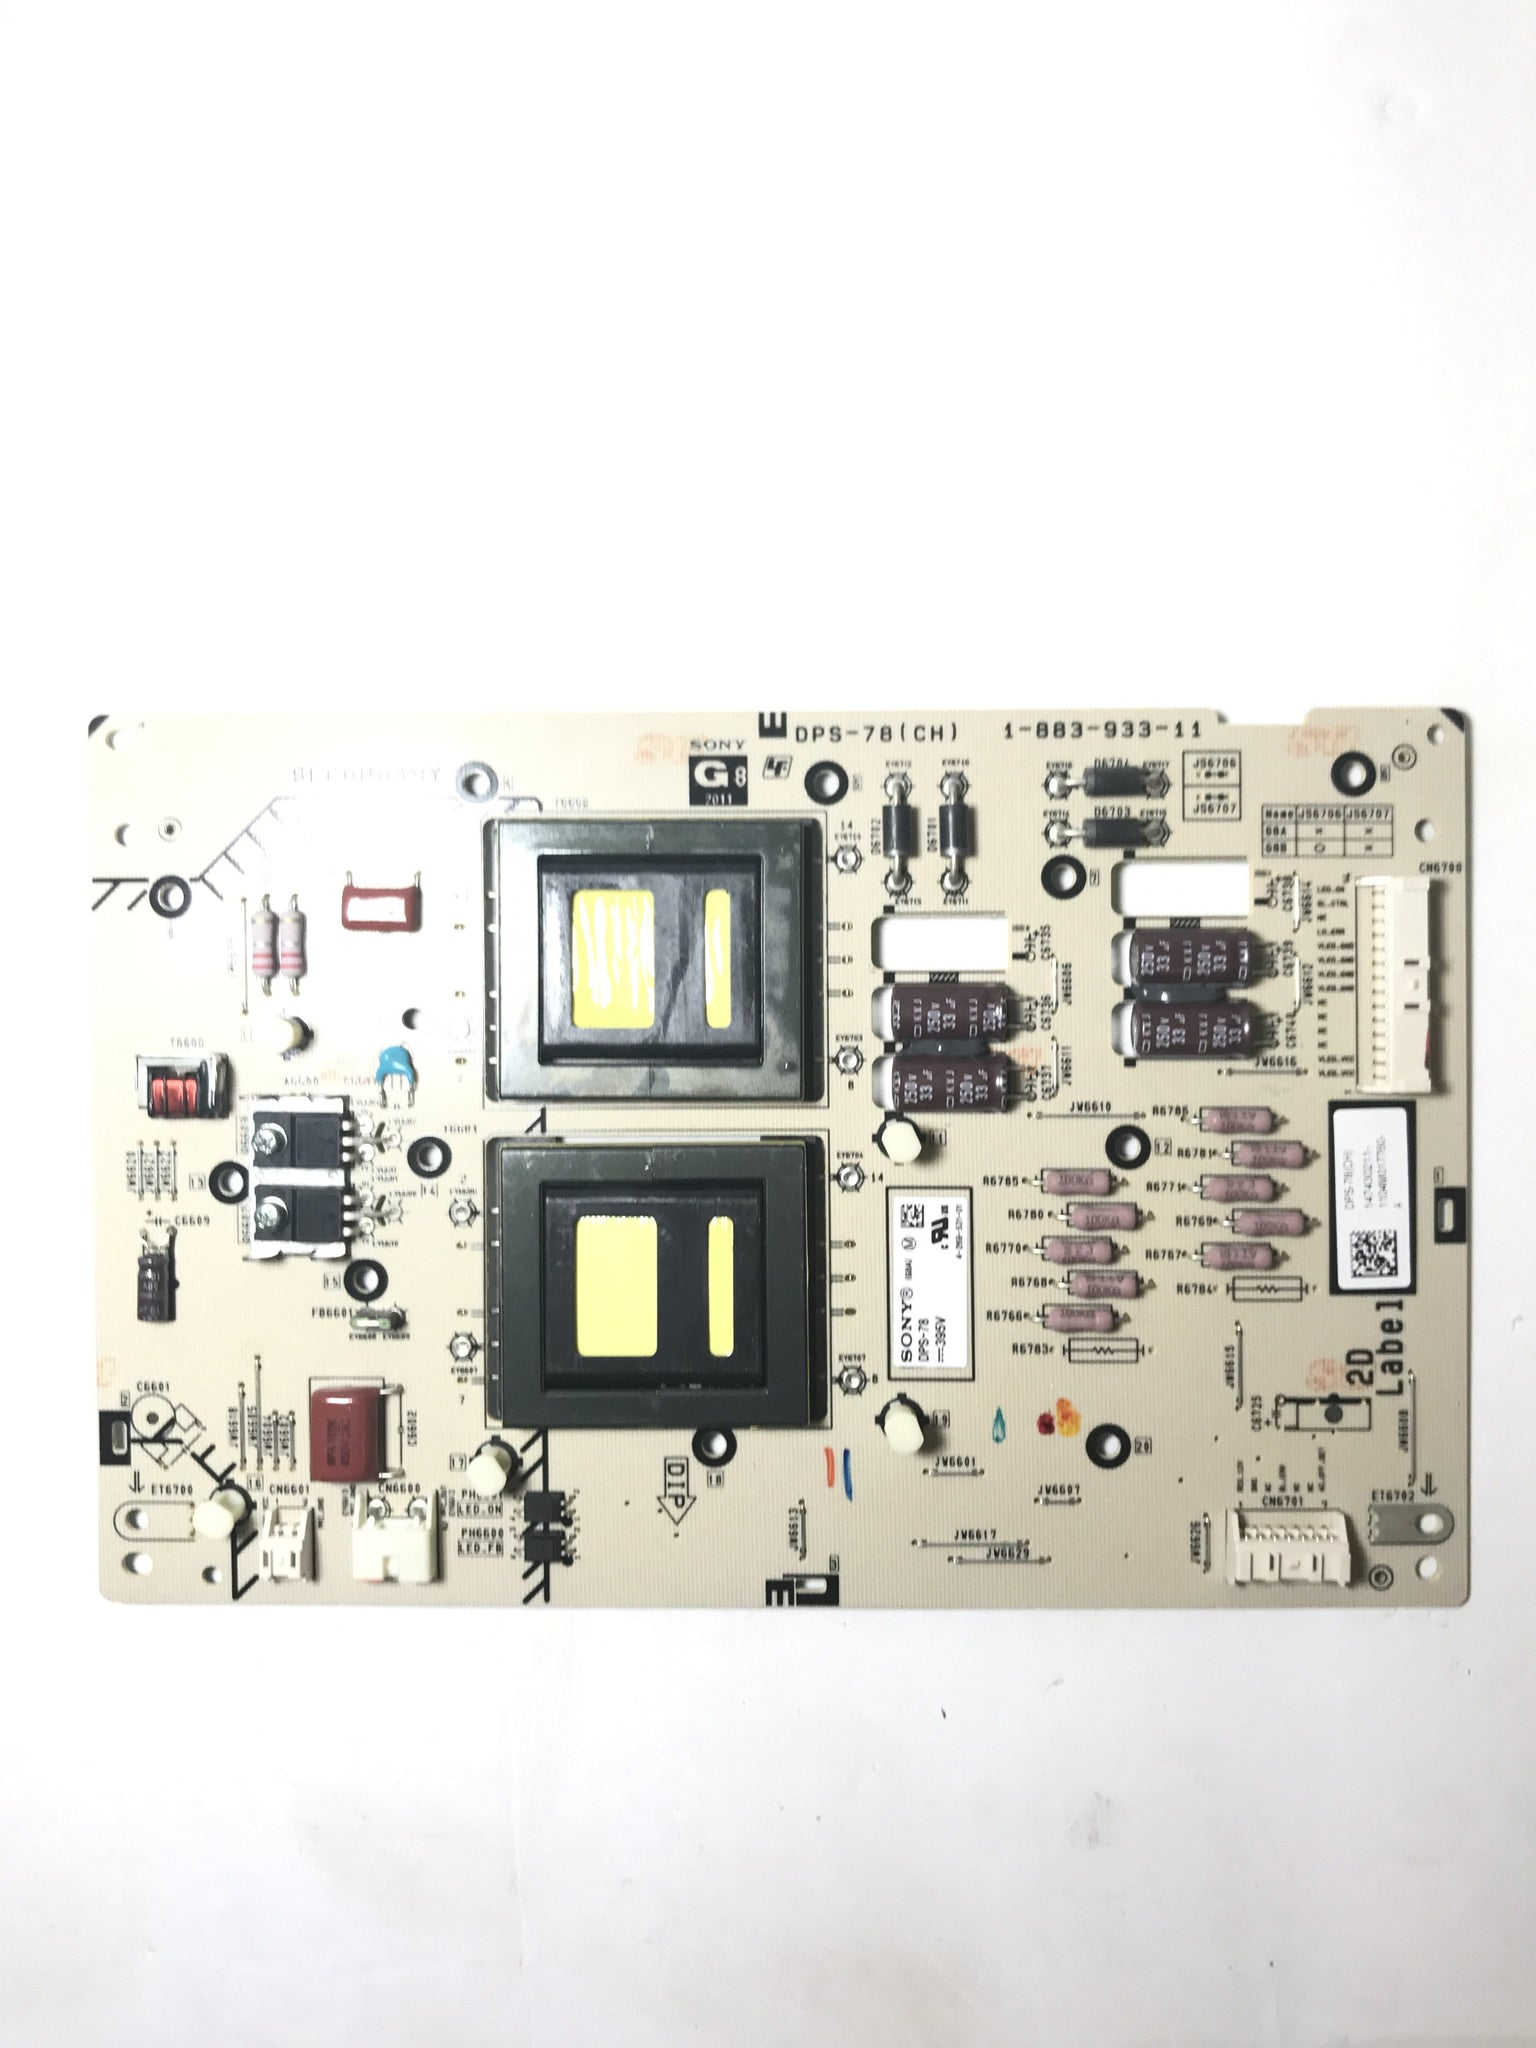 Sony 1-474-302-11 (DPS-78, 1-883-933-11) G8 Power Supply Board